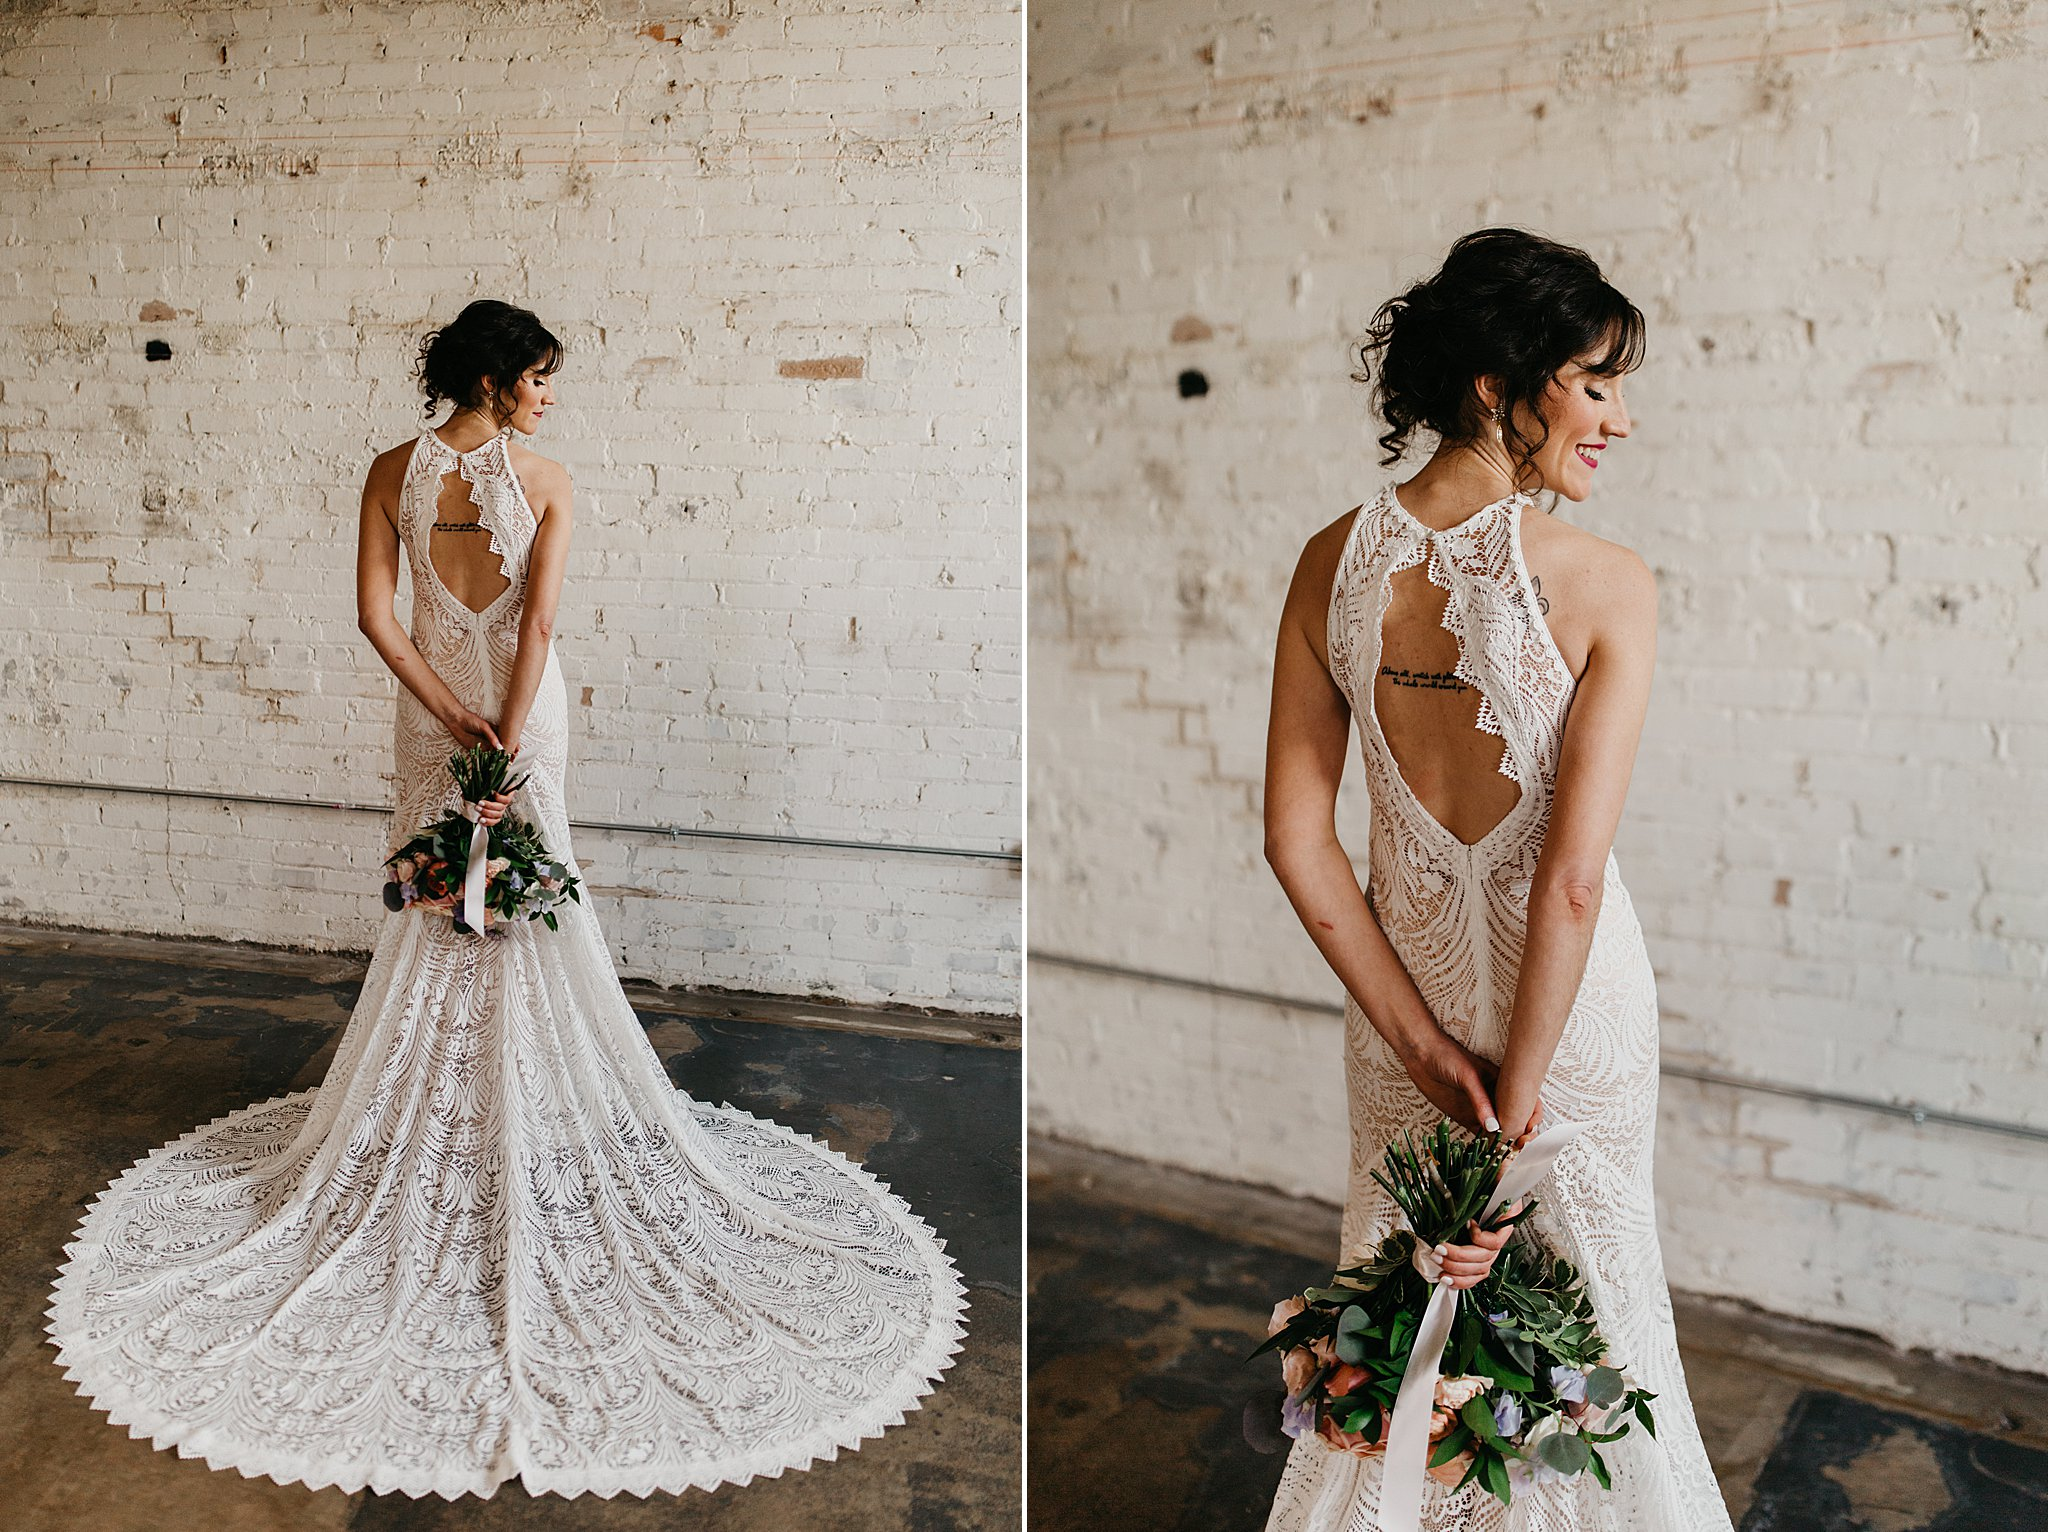 Wilderlove Co_Wedding Photographer_Industrial Wedding_Jewish Wedding_Dallas Texas Wedding_Brake & Clutch Warehouse_North Texas Photographer_0036.jpg